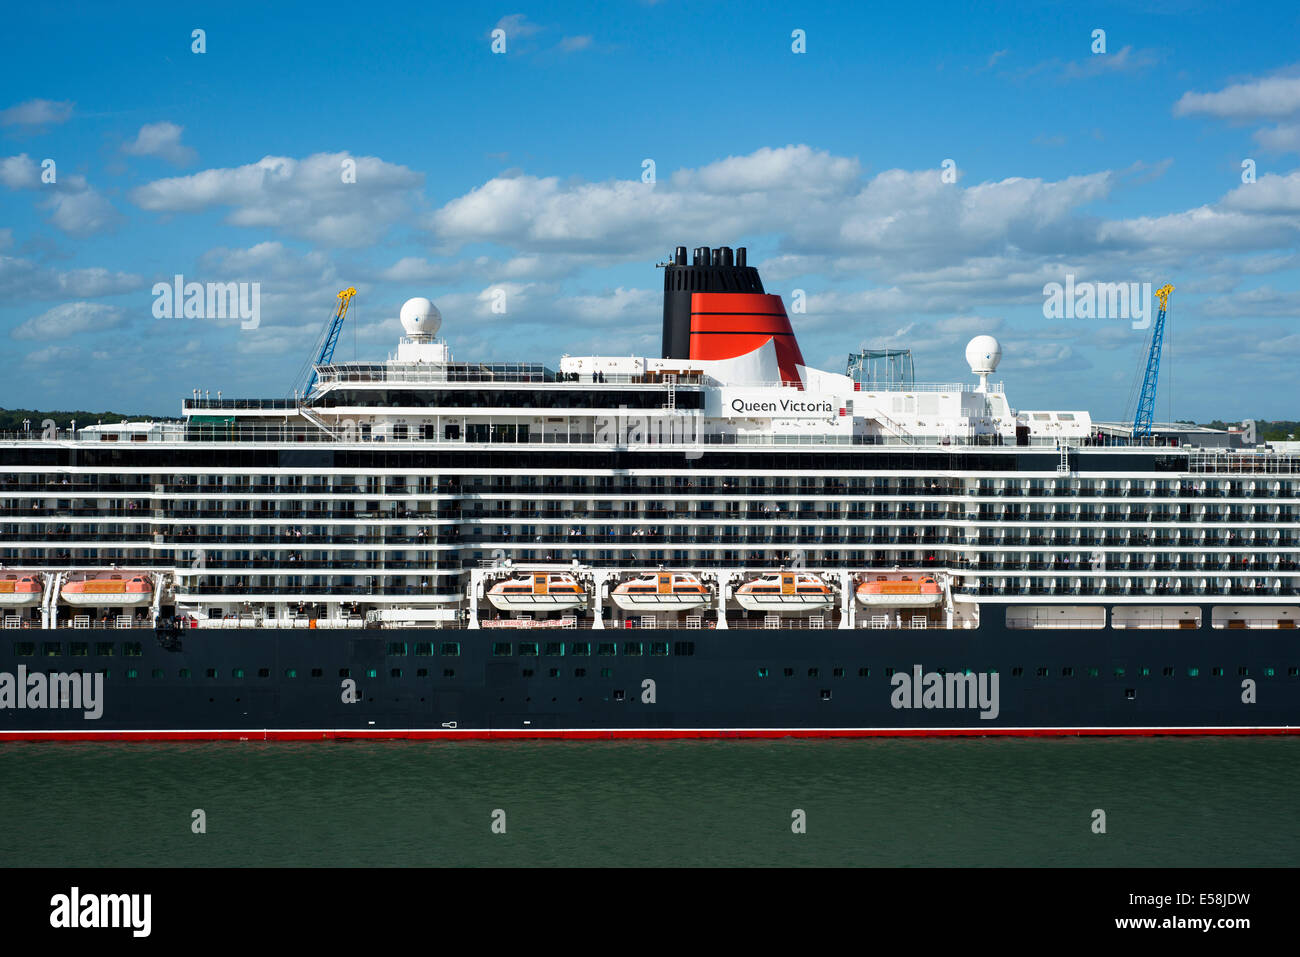 MS Queen Victoria docked at Southampton, Hampshire, England, United Kingdom - Stock Image